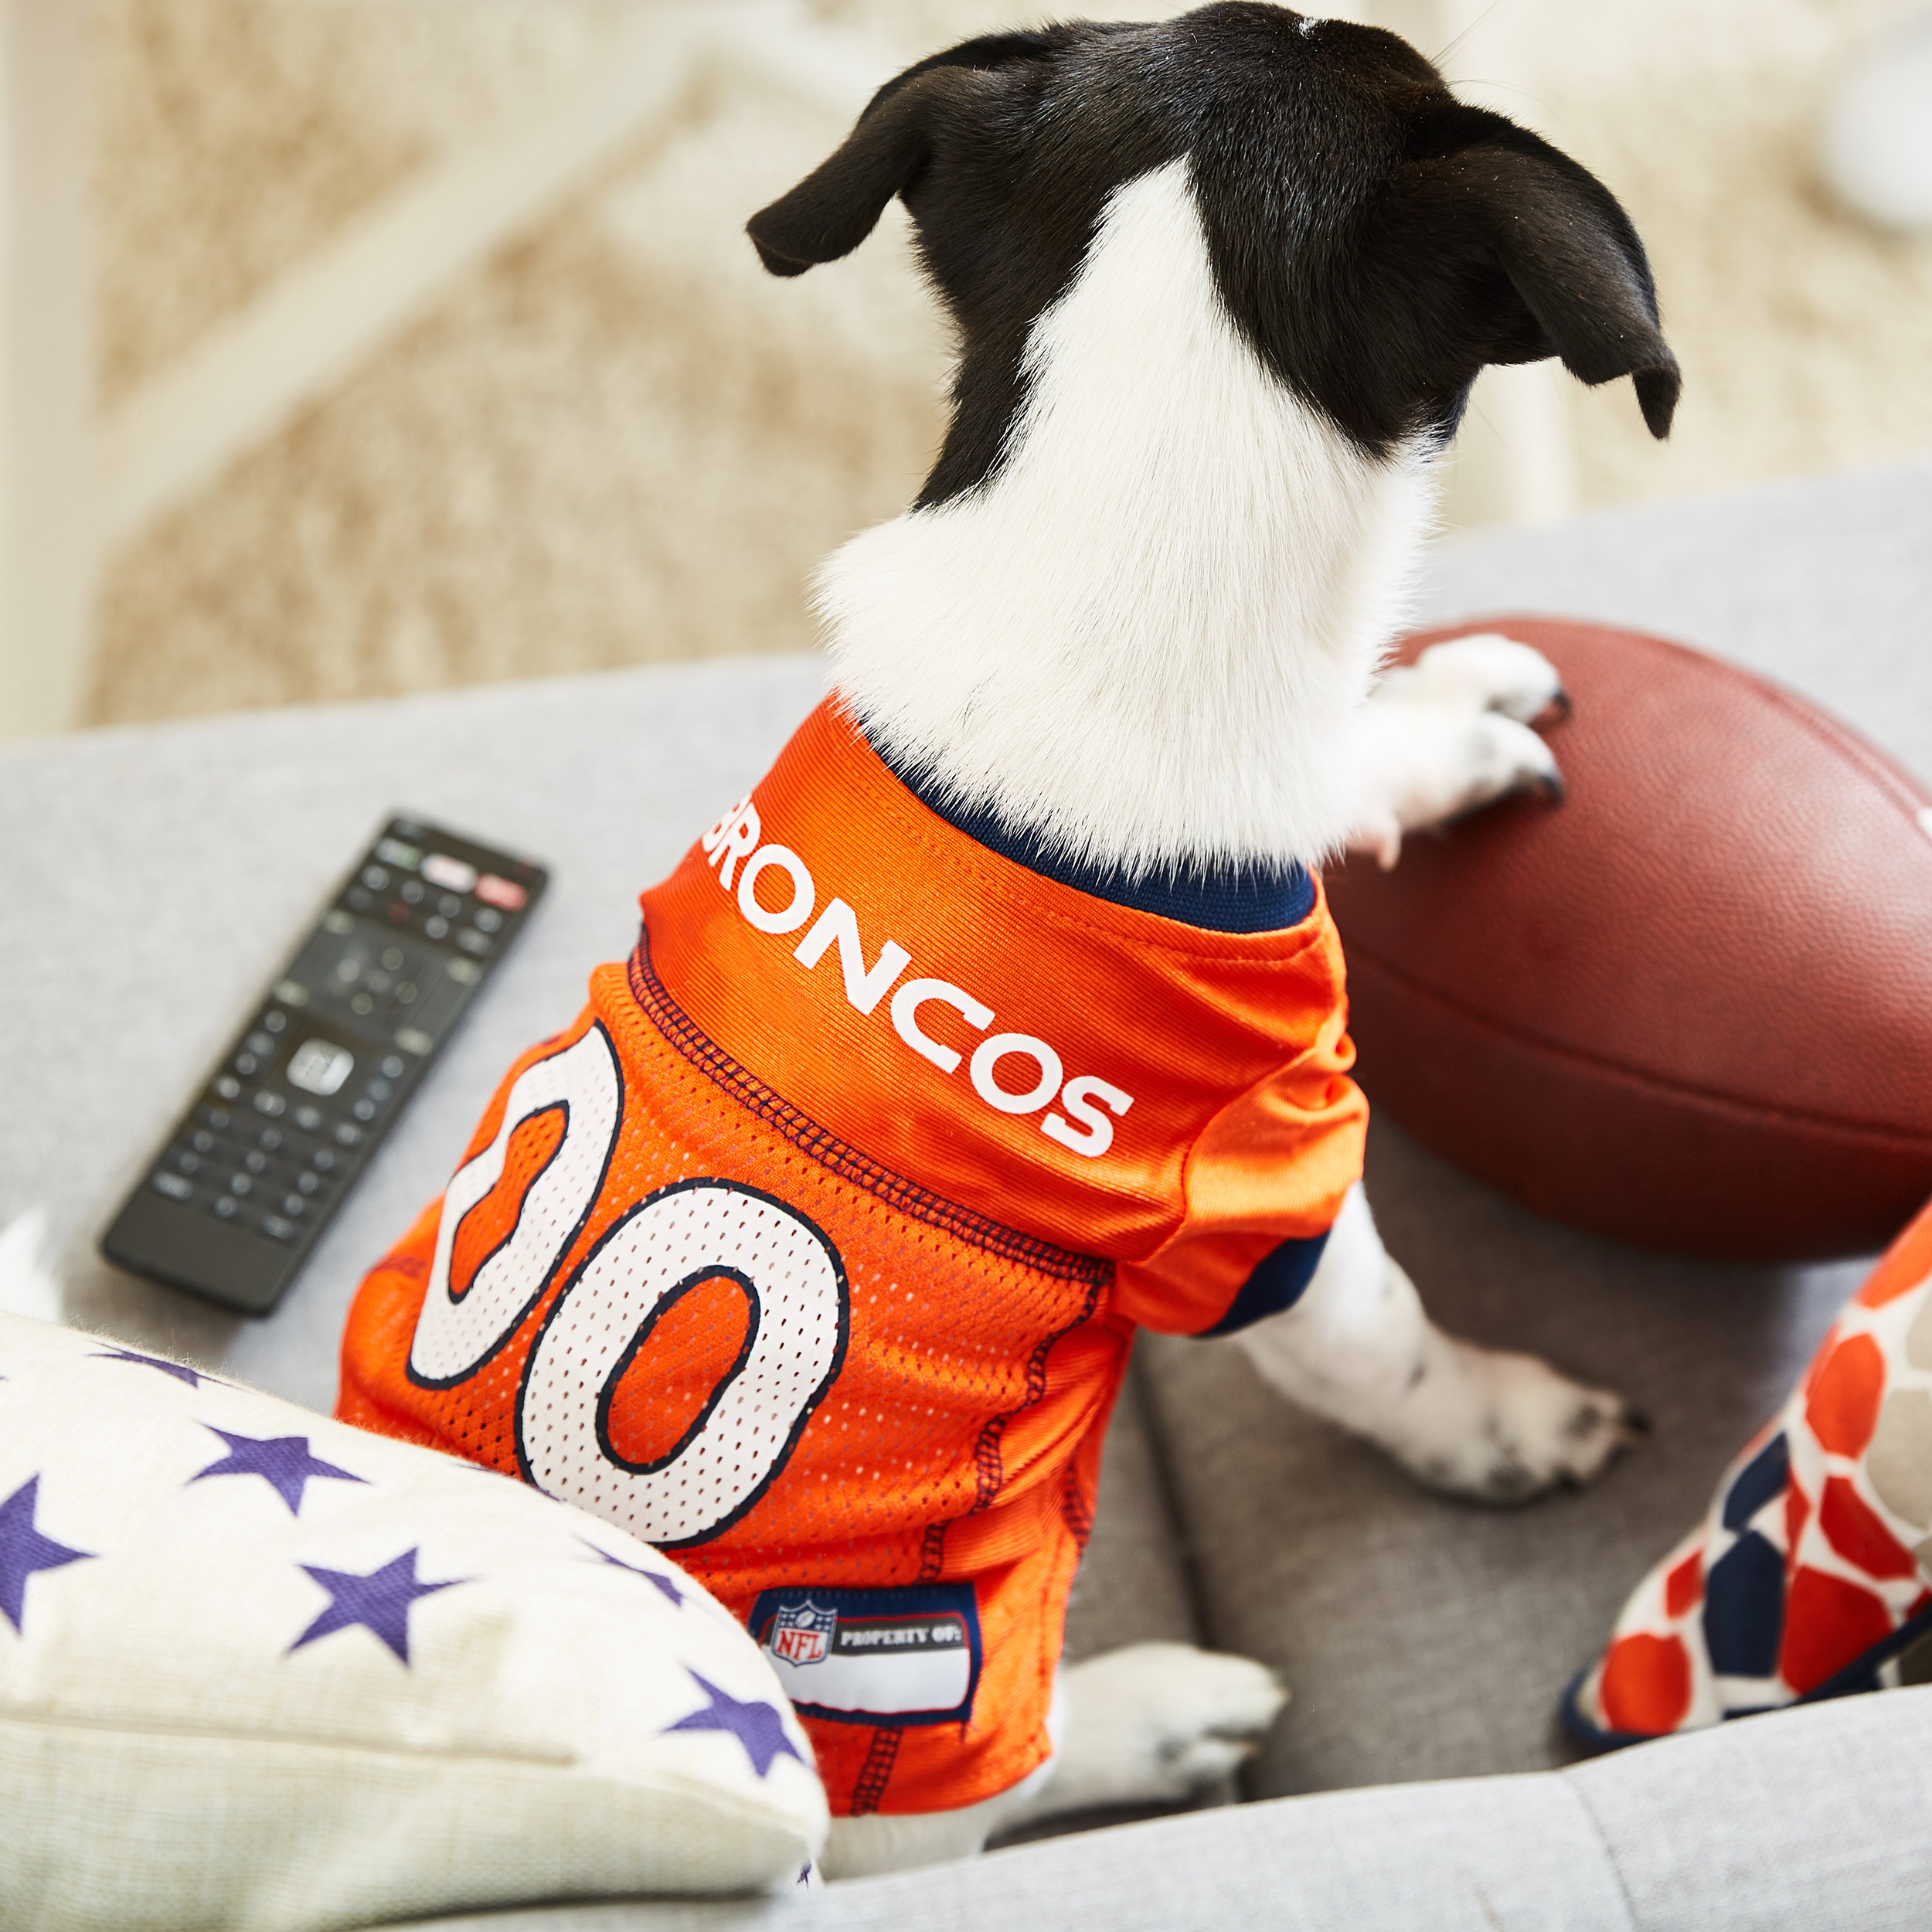 Commercial, advertising, tabletop food product photography taken for Chewy.com of a dog in a football jersey - by Javier Edwards of El Roi Photo, based in Miami, Fl.